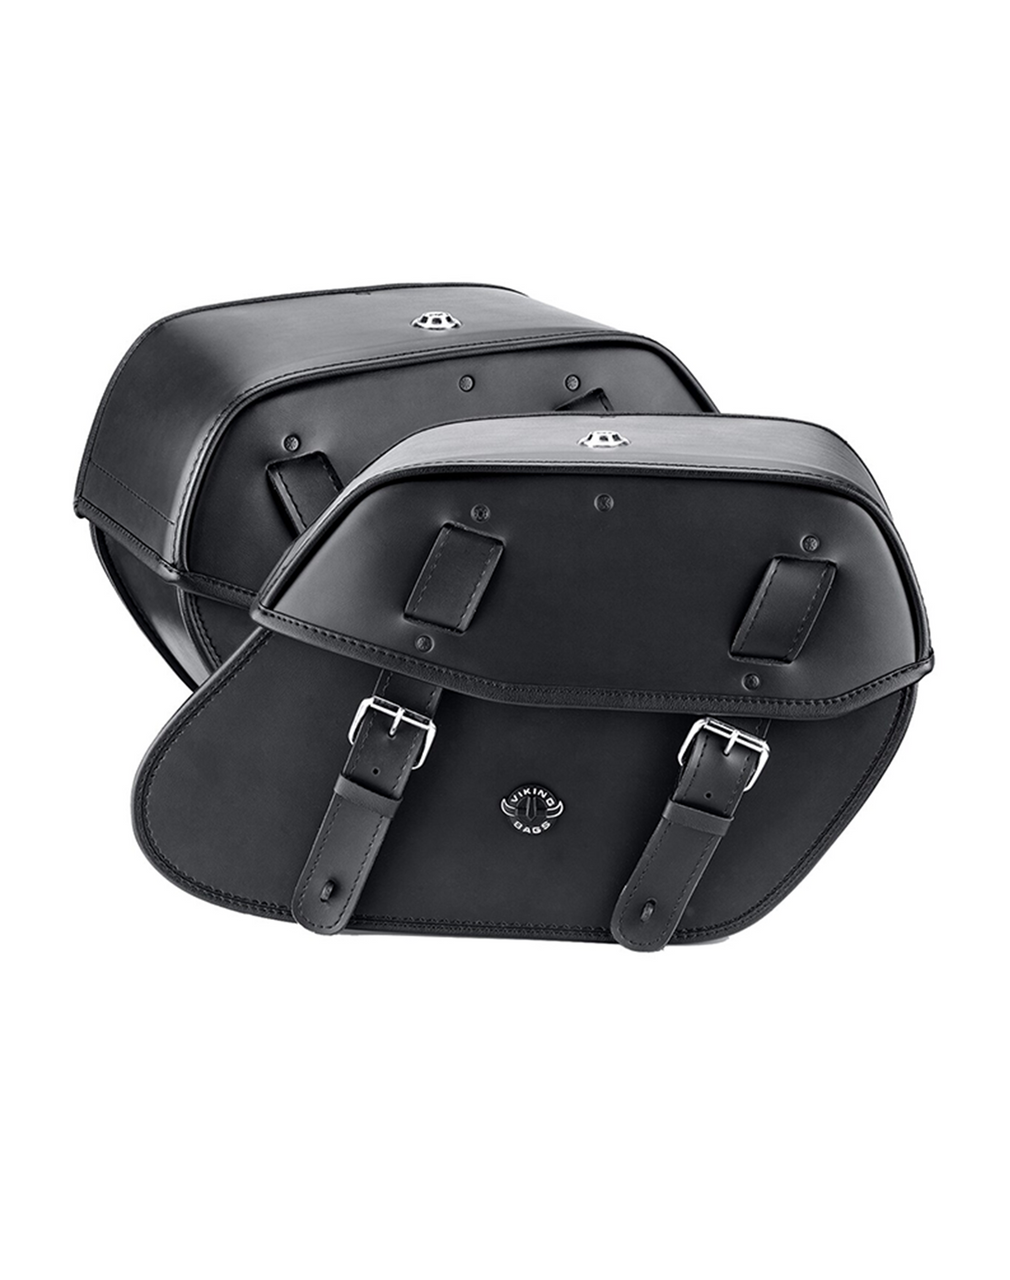 Viking Odin Large Motorcycle Saddlebags For Harley Softail Custom FXSTC Both Bags View